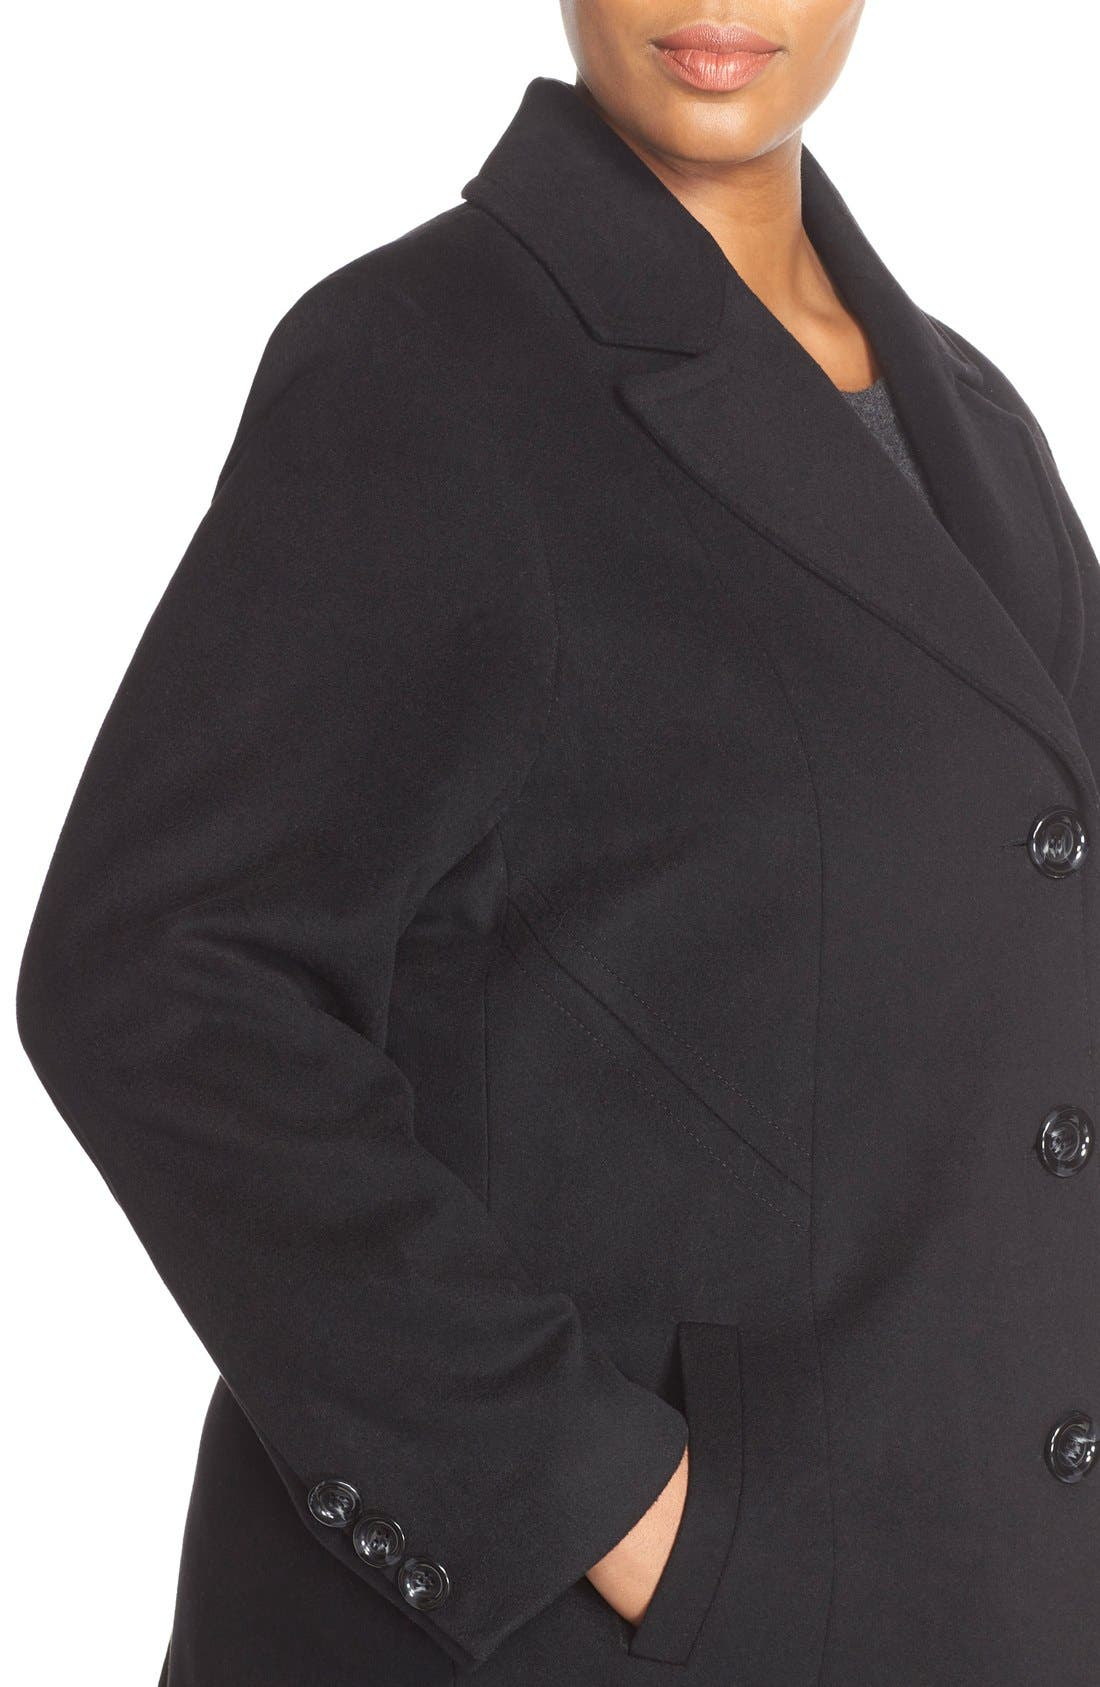 Notch Collar Wool Blend Coat,                             Alternate thumbnail 5, color,                             BLACK